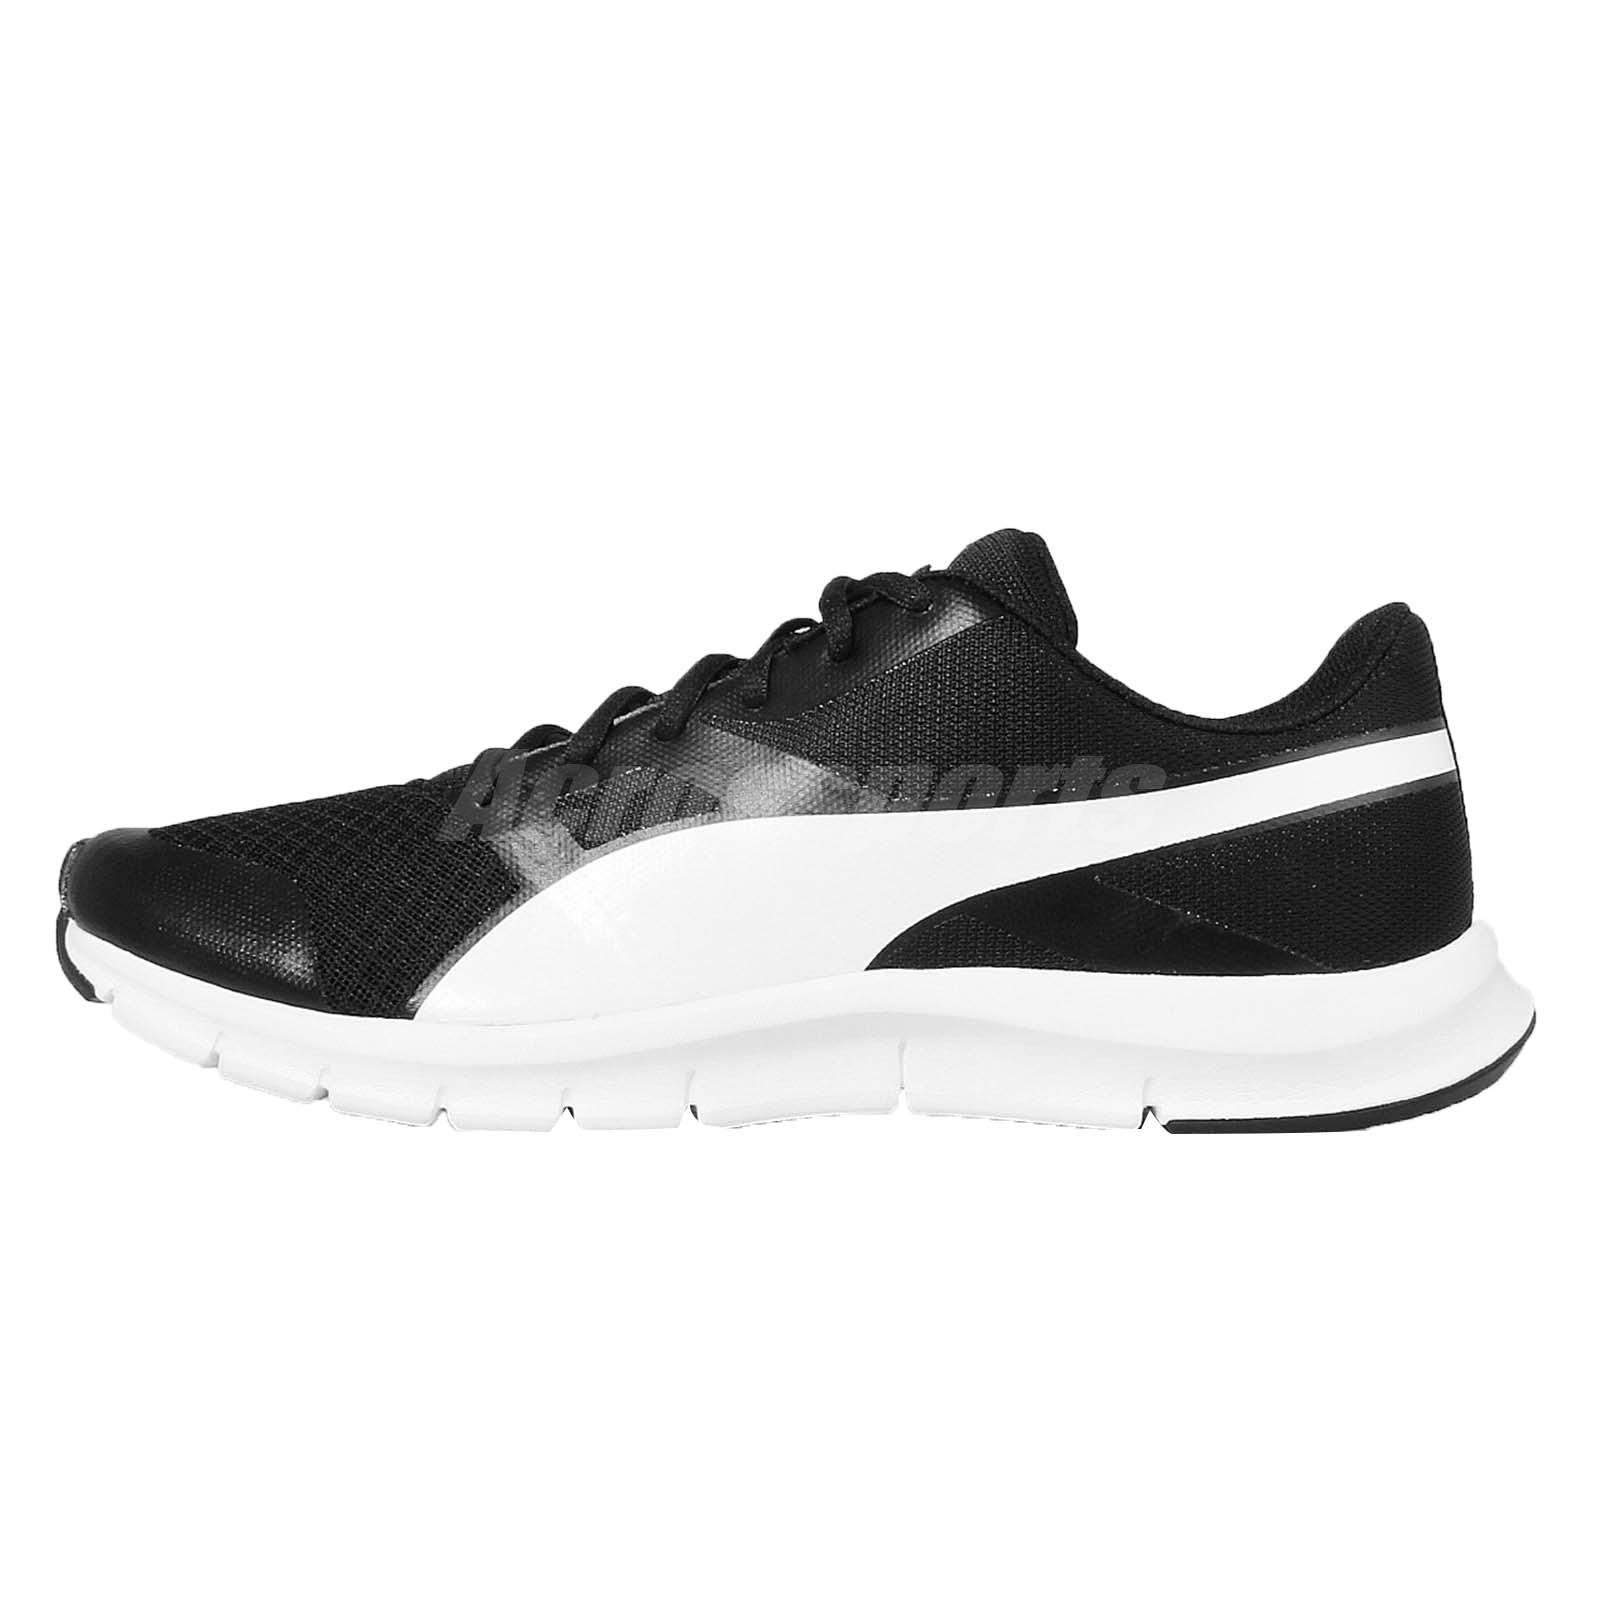 Puma Flexracer Black White Mens Running Shoes 360580 01